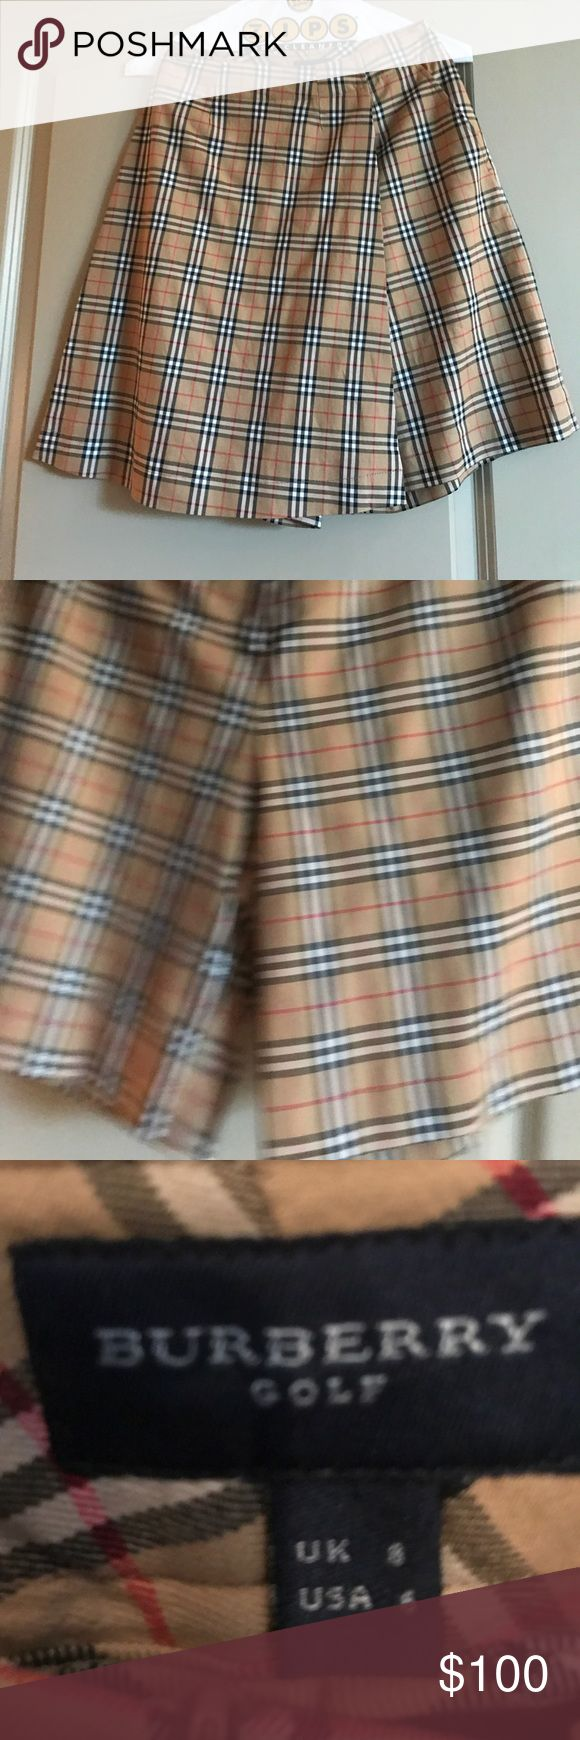 Burberry skort sz 6 Adorable Burberry skort Just freshly dry cleaned. Worn very few times. In fabulous condition.  Photo makes it look wrinkled but it is not. Just dry cleaned. Burberry Shorts Skorts